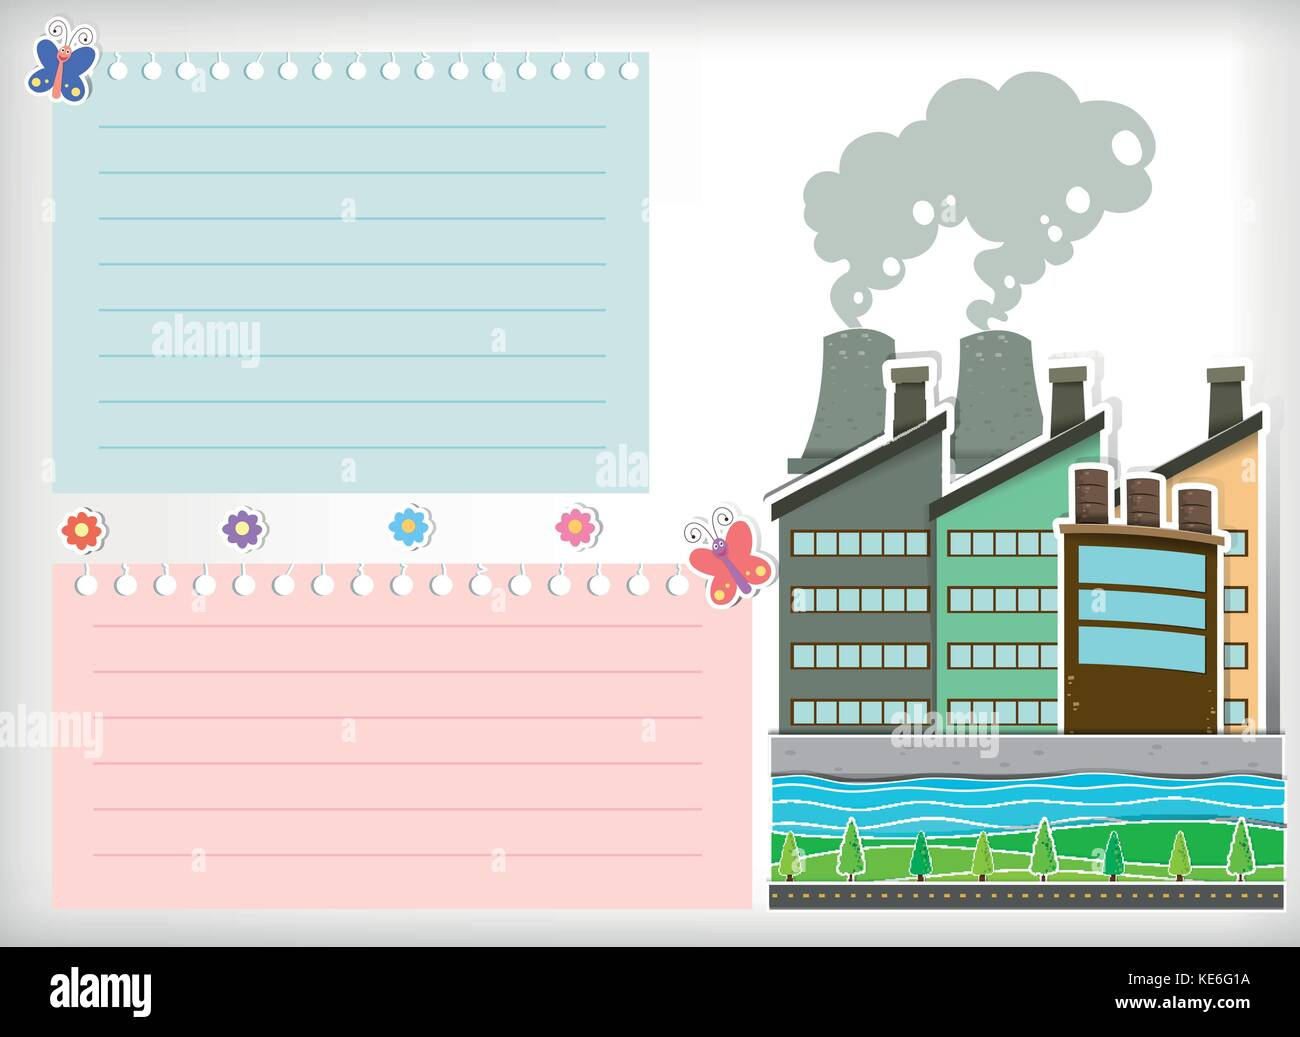 Paper design with park and factories illustration - Stock Vector